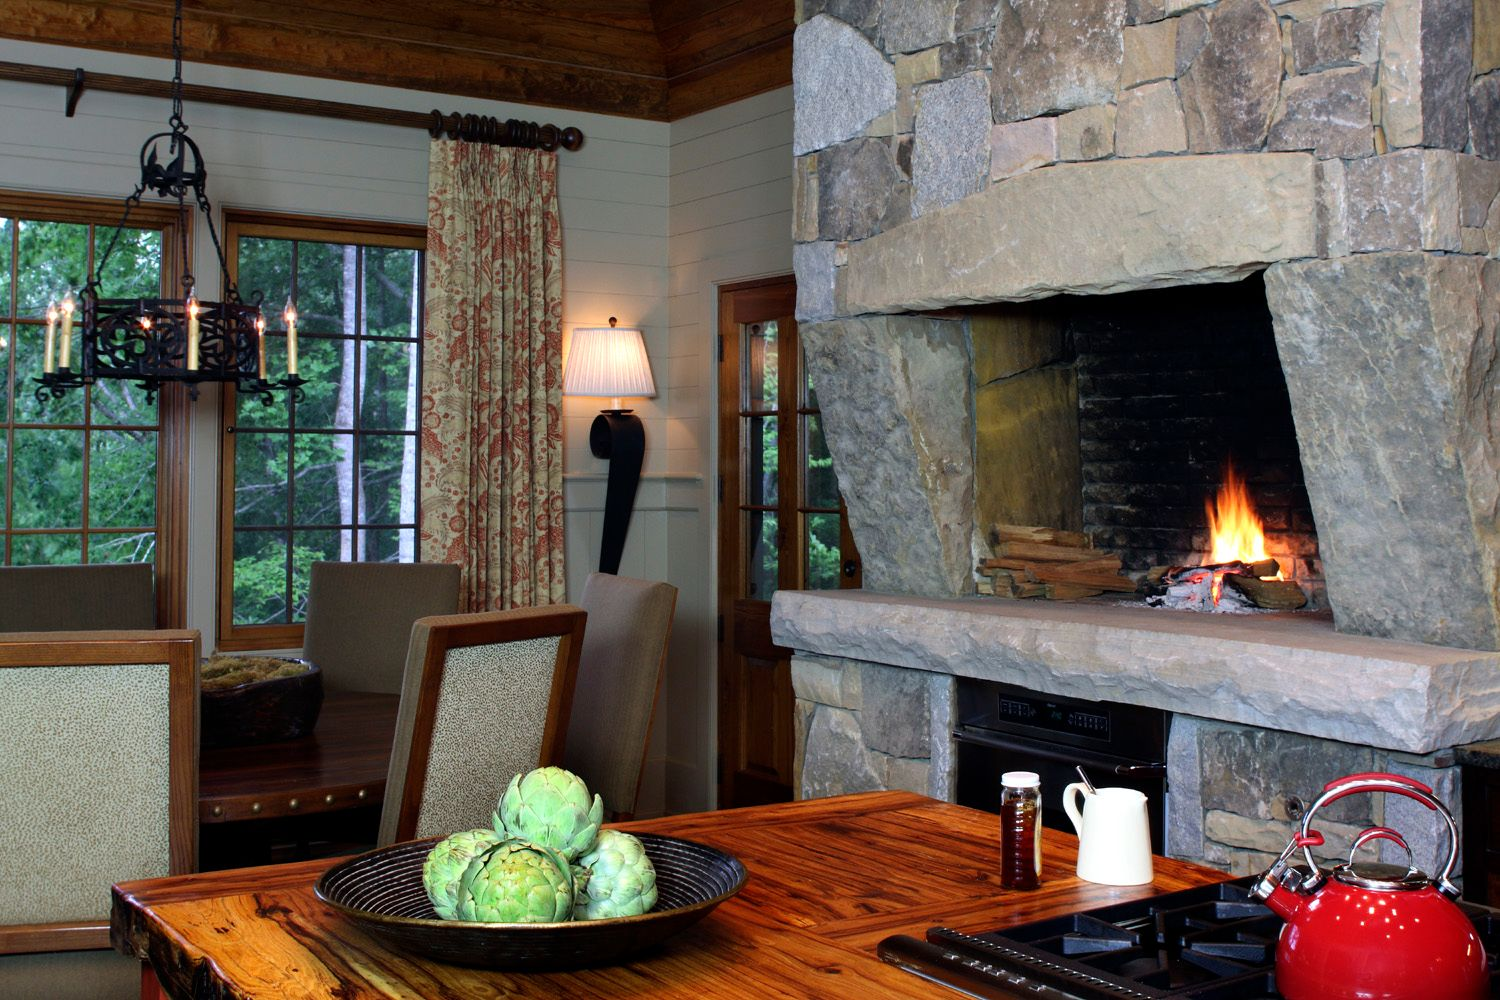 4 Dining and cooks stove 25.jpg